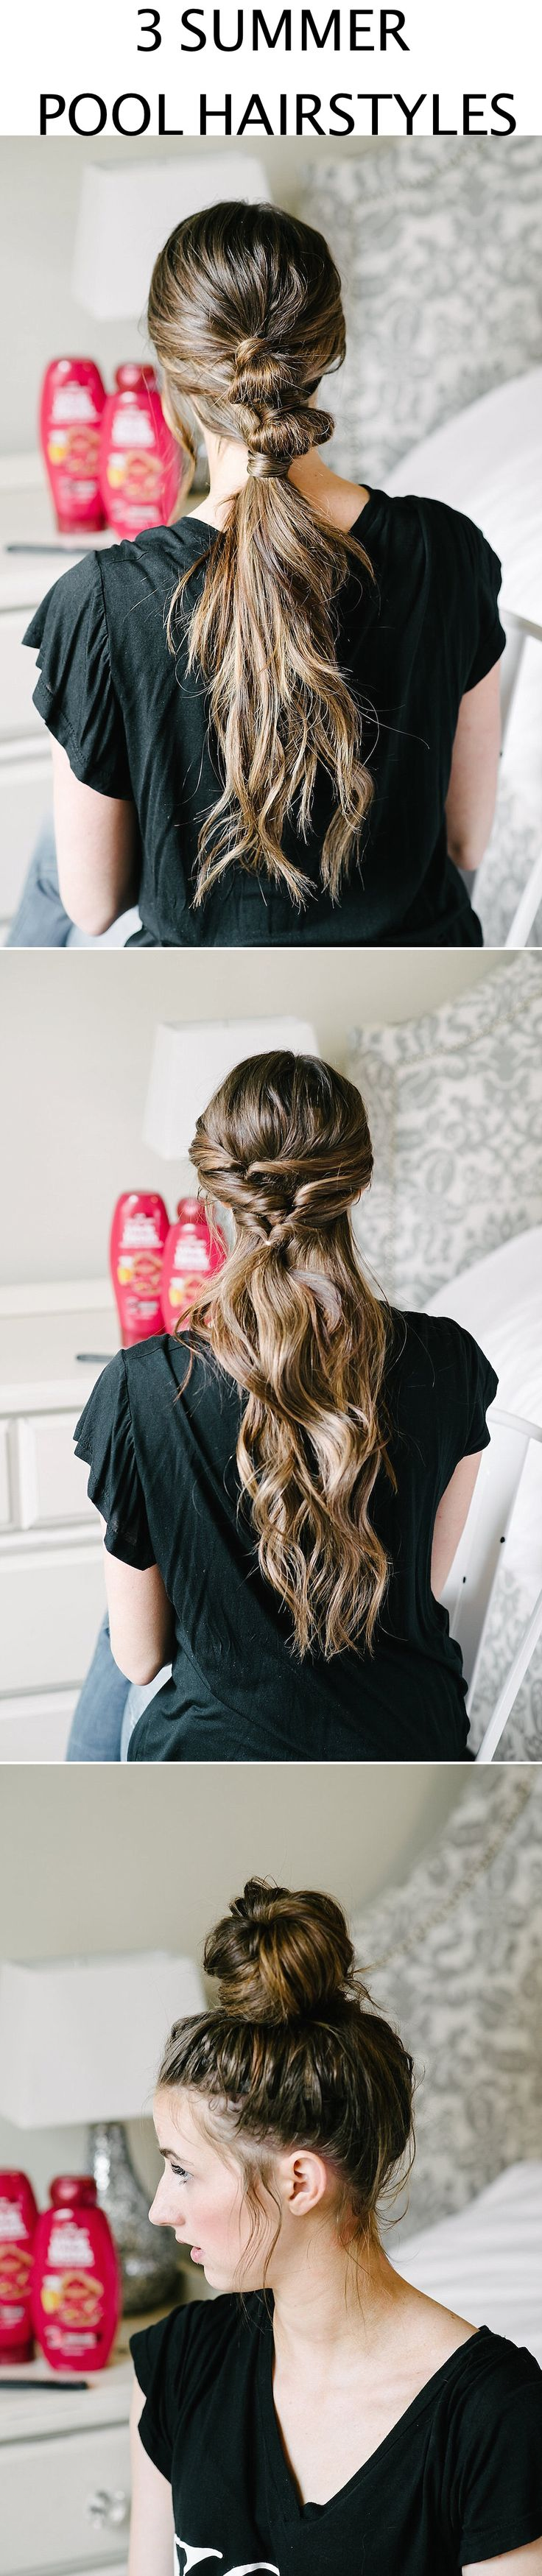 3 Easy Summer & Pool Hairstyles with tutorials for long hair. Come see how I make my favorite braid, favortie bun, and favorite pony for when hanging out at the pool this summer. #WholeBlends #ad